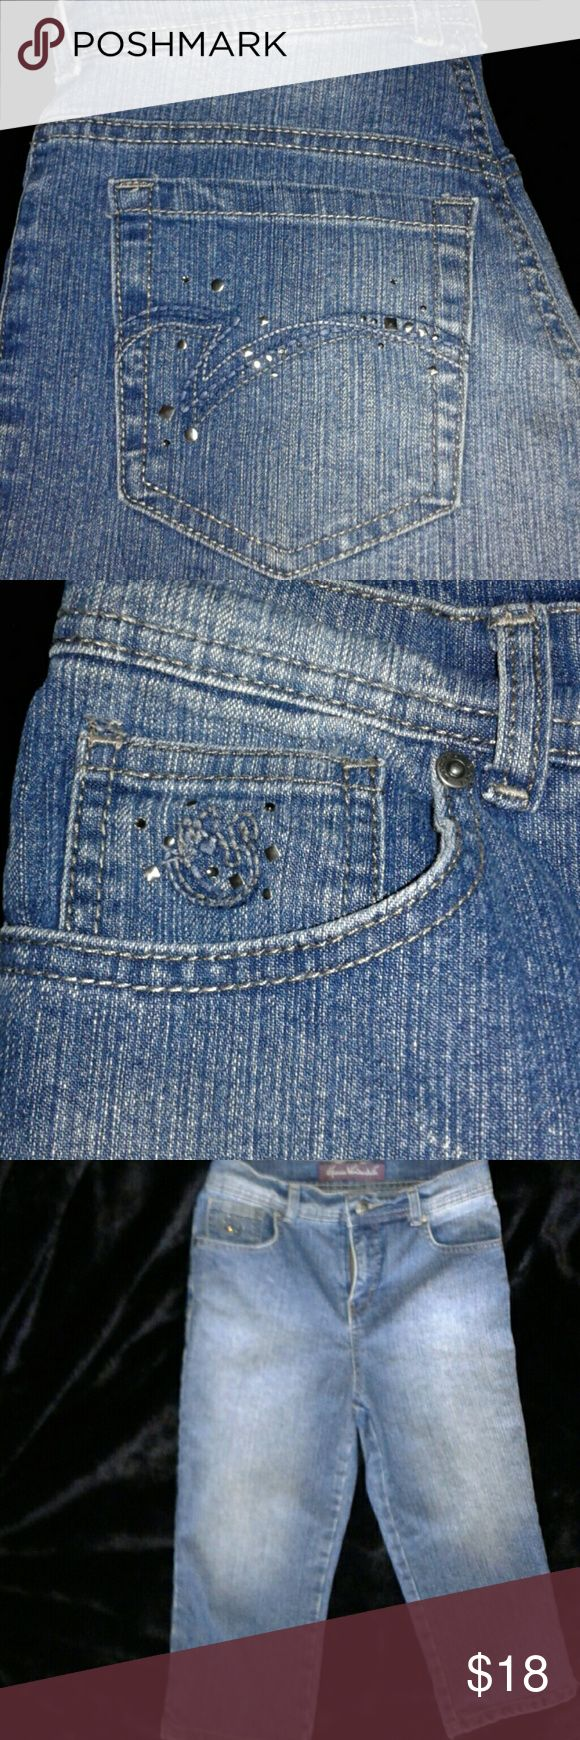 🎀 Gloria Vanderbilt Capri  W/ Embellished Pockets These are a beautiful pair of Capri style denim jeans by Gloria Vanderbilt.  They have some added bling style on both back pockets as well as the right front pocket.  The embellishments pop out enough to make them noticeable but also not over powering.  They have a factory faded wash on both front and back in a medium blue.   Brand Gloria Vanderbilt  Size 4P Inseam 17.5 Total Length 28 inches  Waist Across 14 inches Rise 10 inches  (measured…